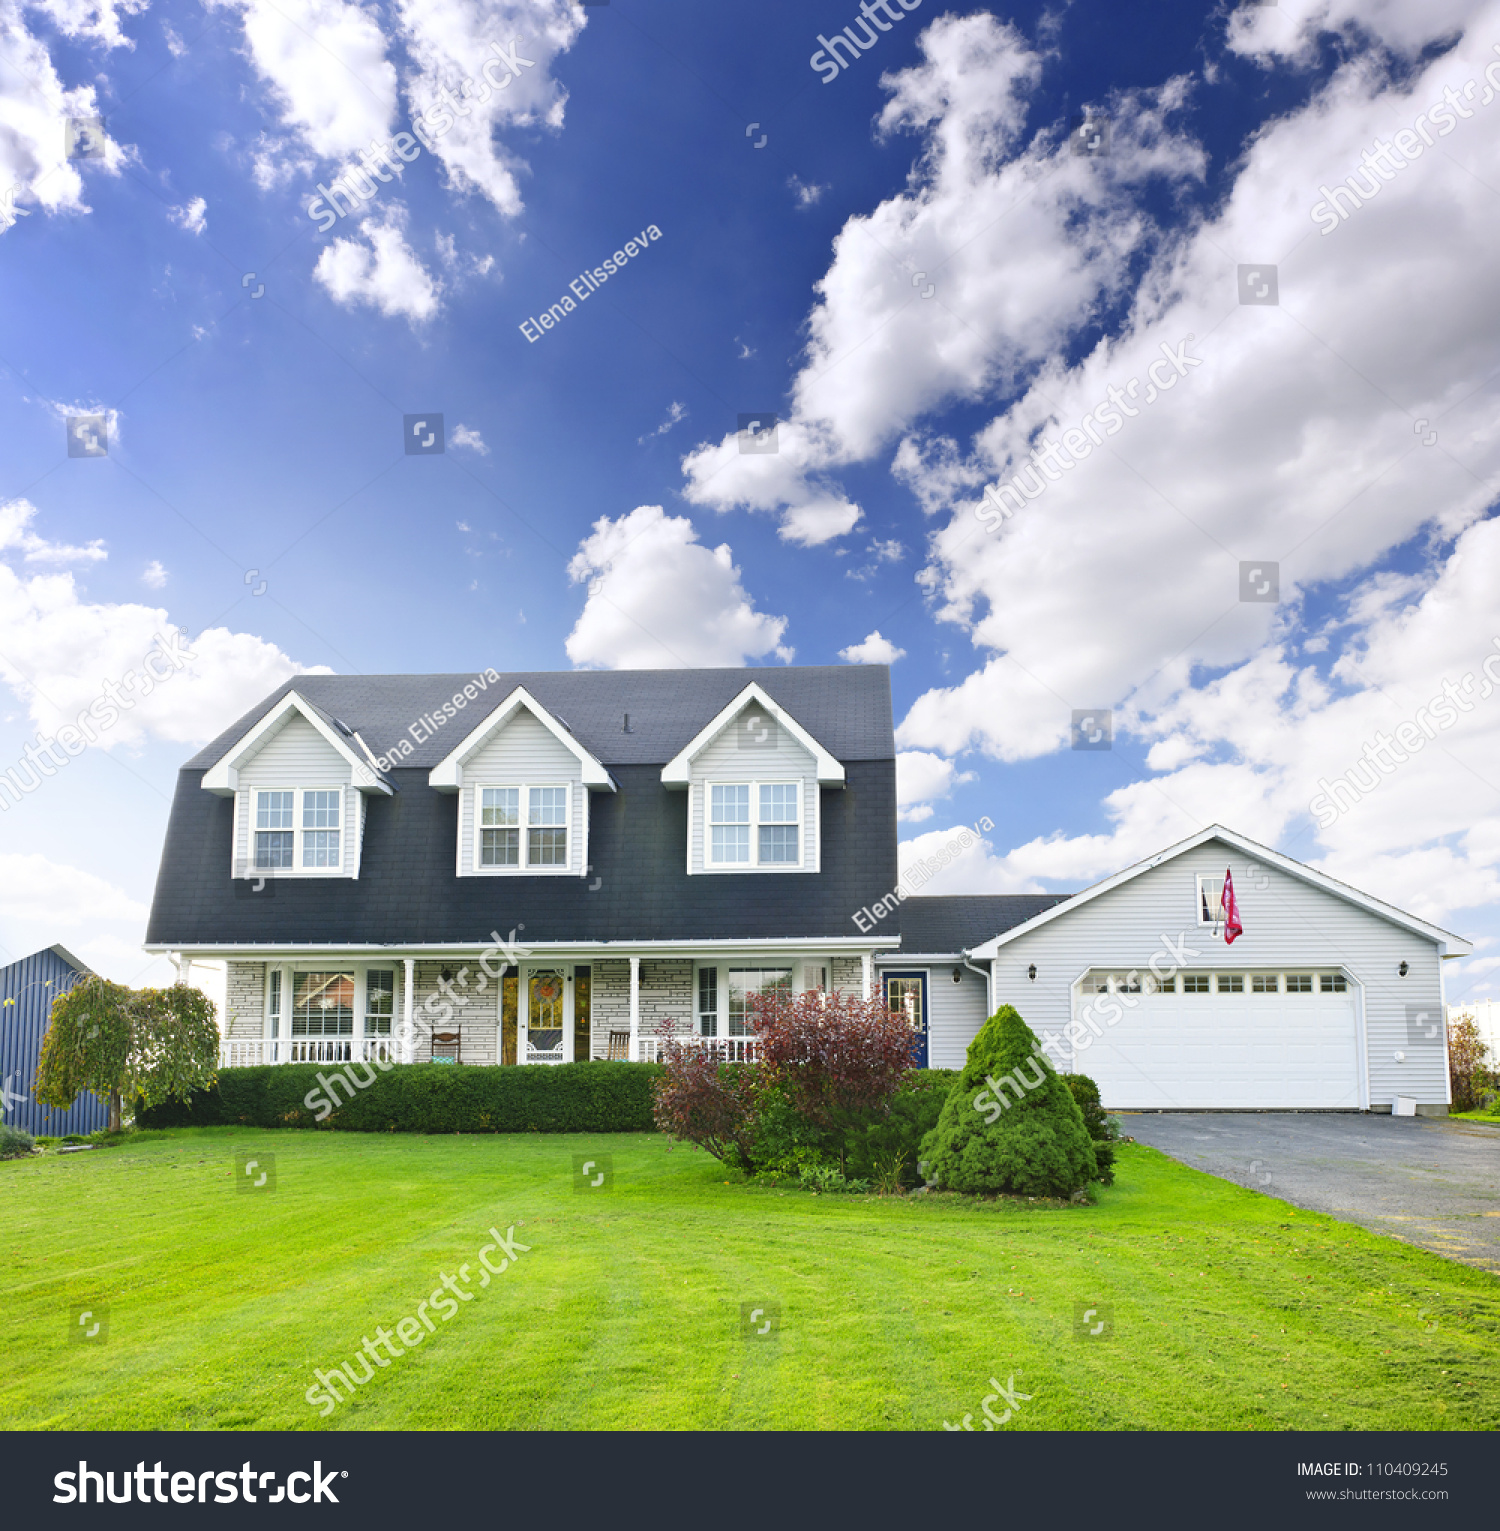 Two Storey Residential House With Attic: Beautiful Two Storey Residential House With Dormers And